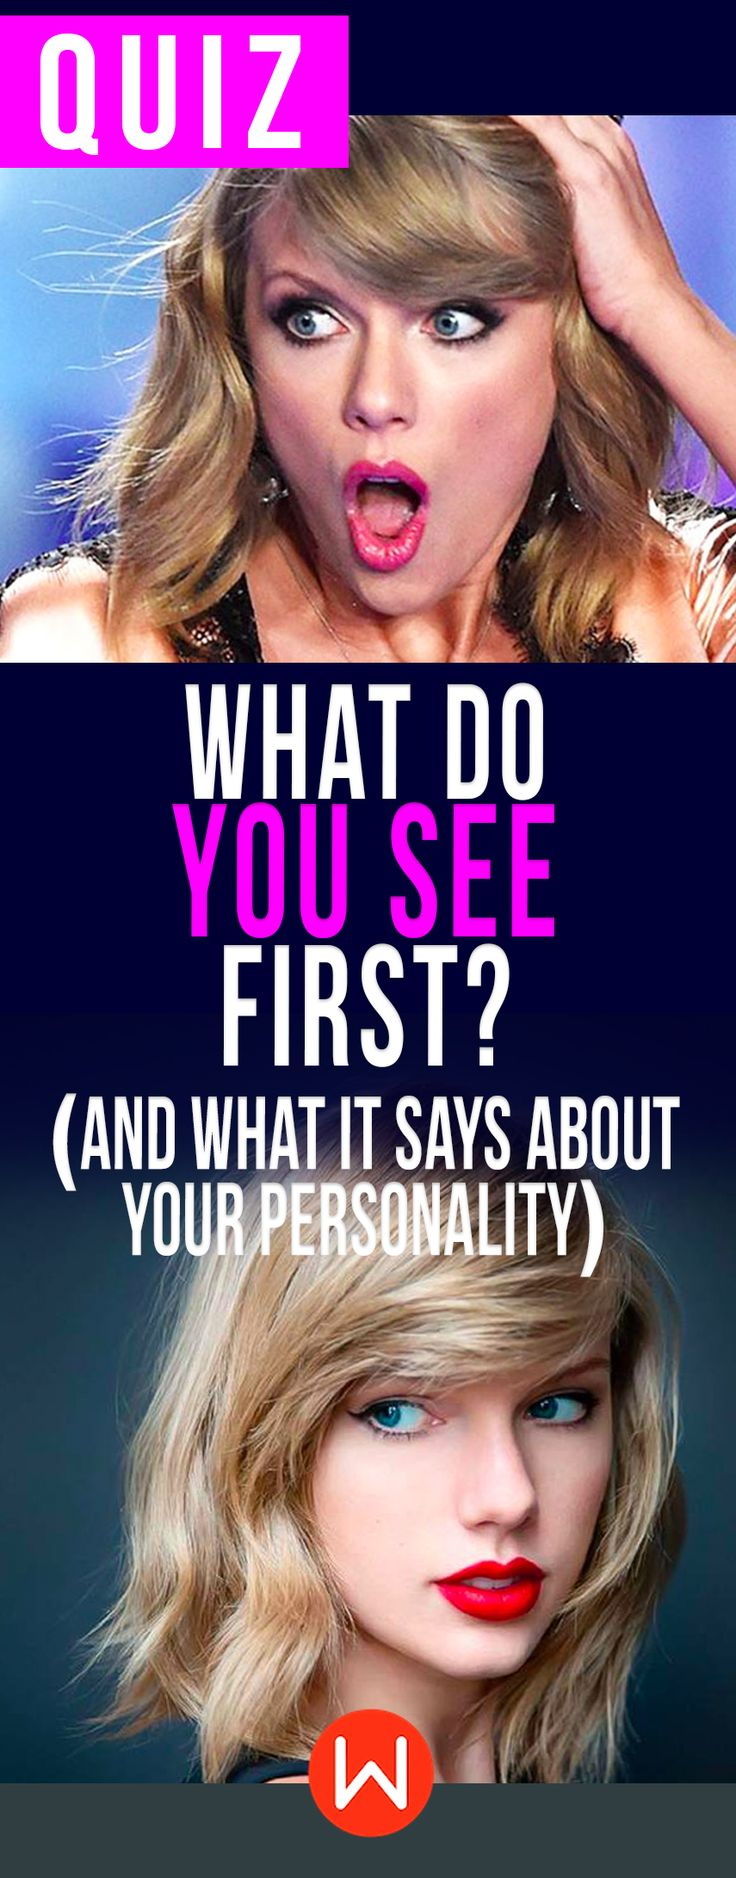 Personality quiz: What do you see first? This personality quiz will reveal your true personality based on your first impressions. What catches your attention? About yourself quiz, Buzzfeed quizzes, playbuzz quiz, fun test, girl test, personality traits quiz, image interpretation quiz. What kind of person are you?